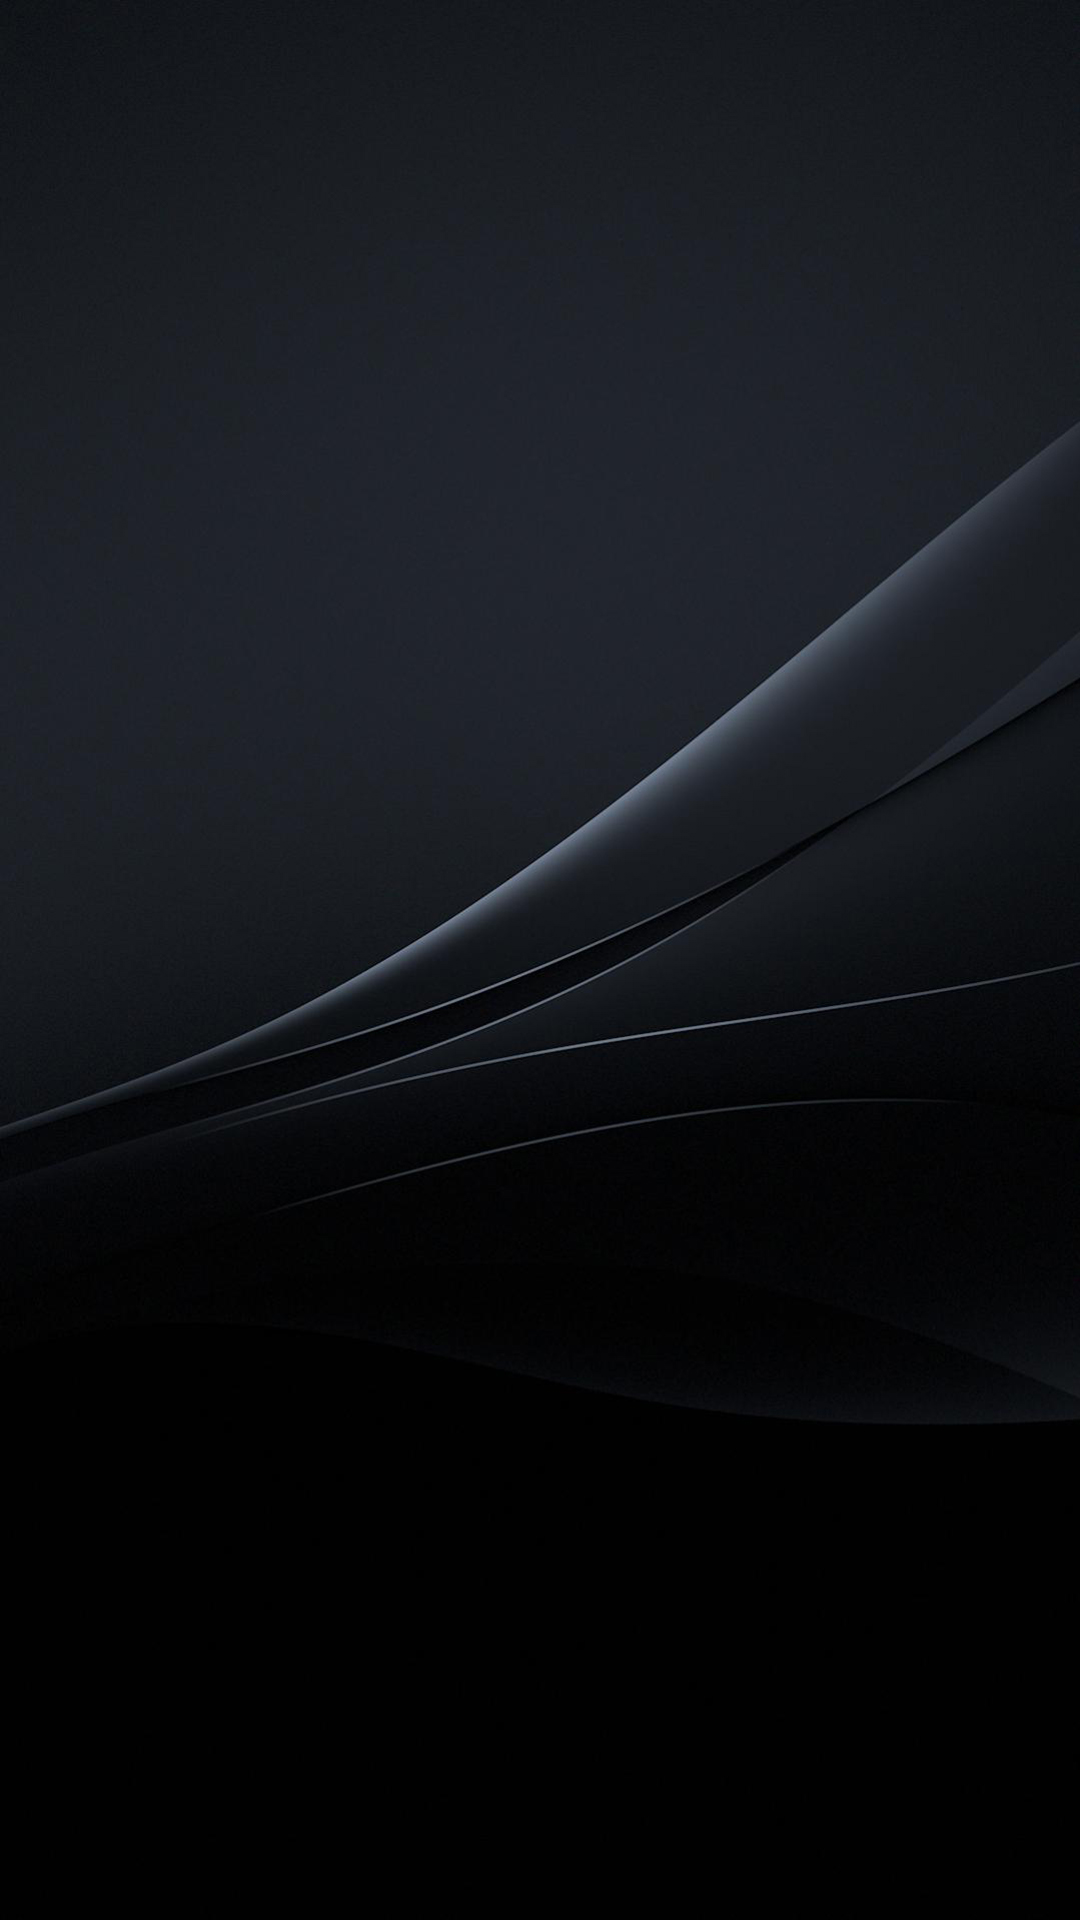 Xperia Lollipop Black Experience Flow Wallpaper